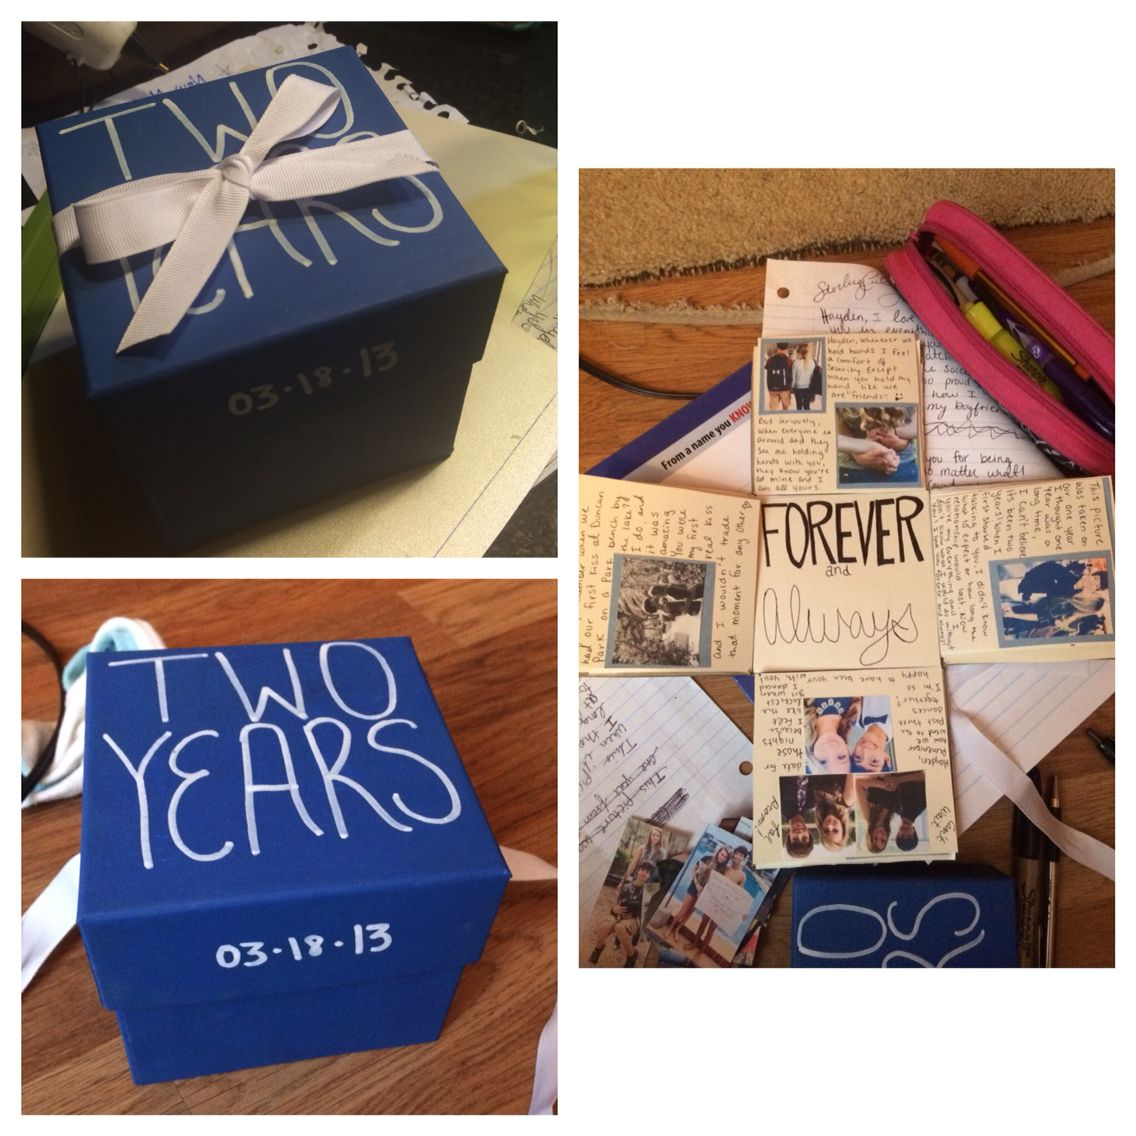 anniversary box. for my boyfriend and i's 2 year i made different